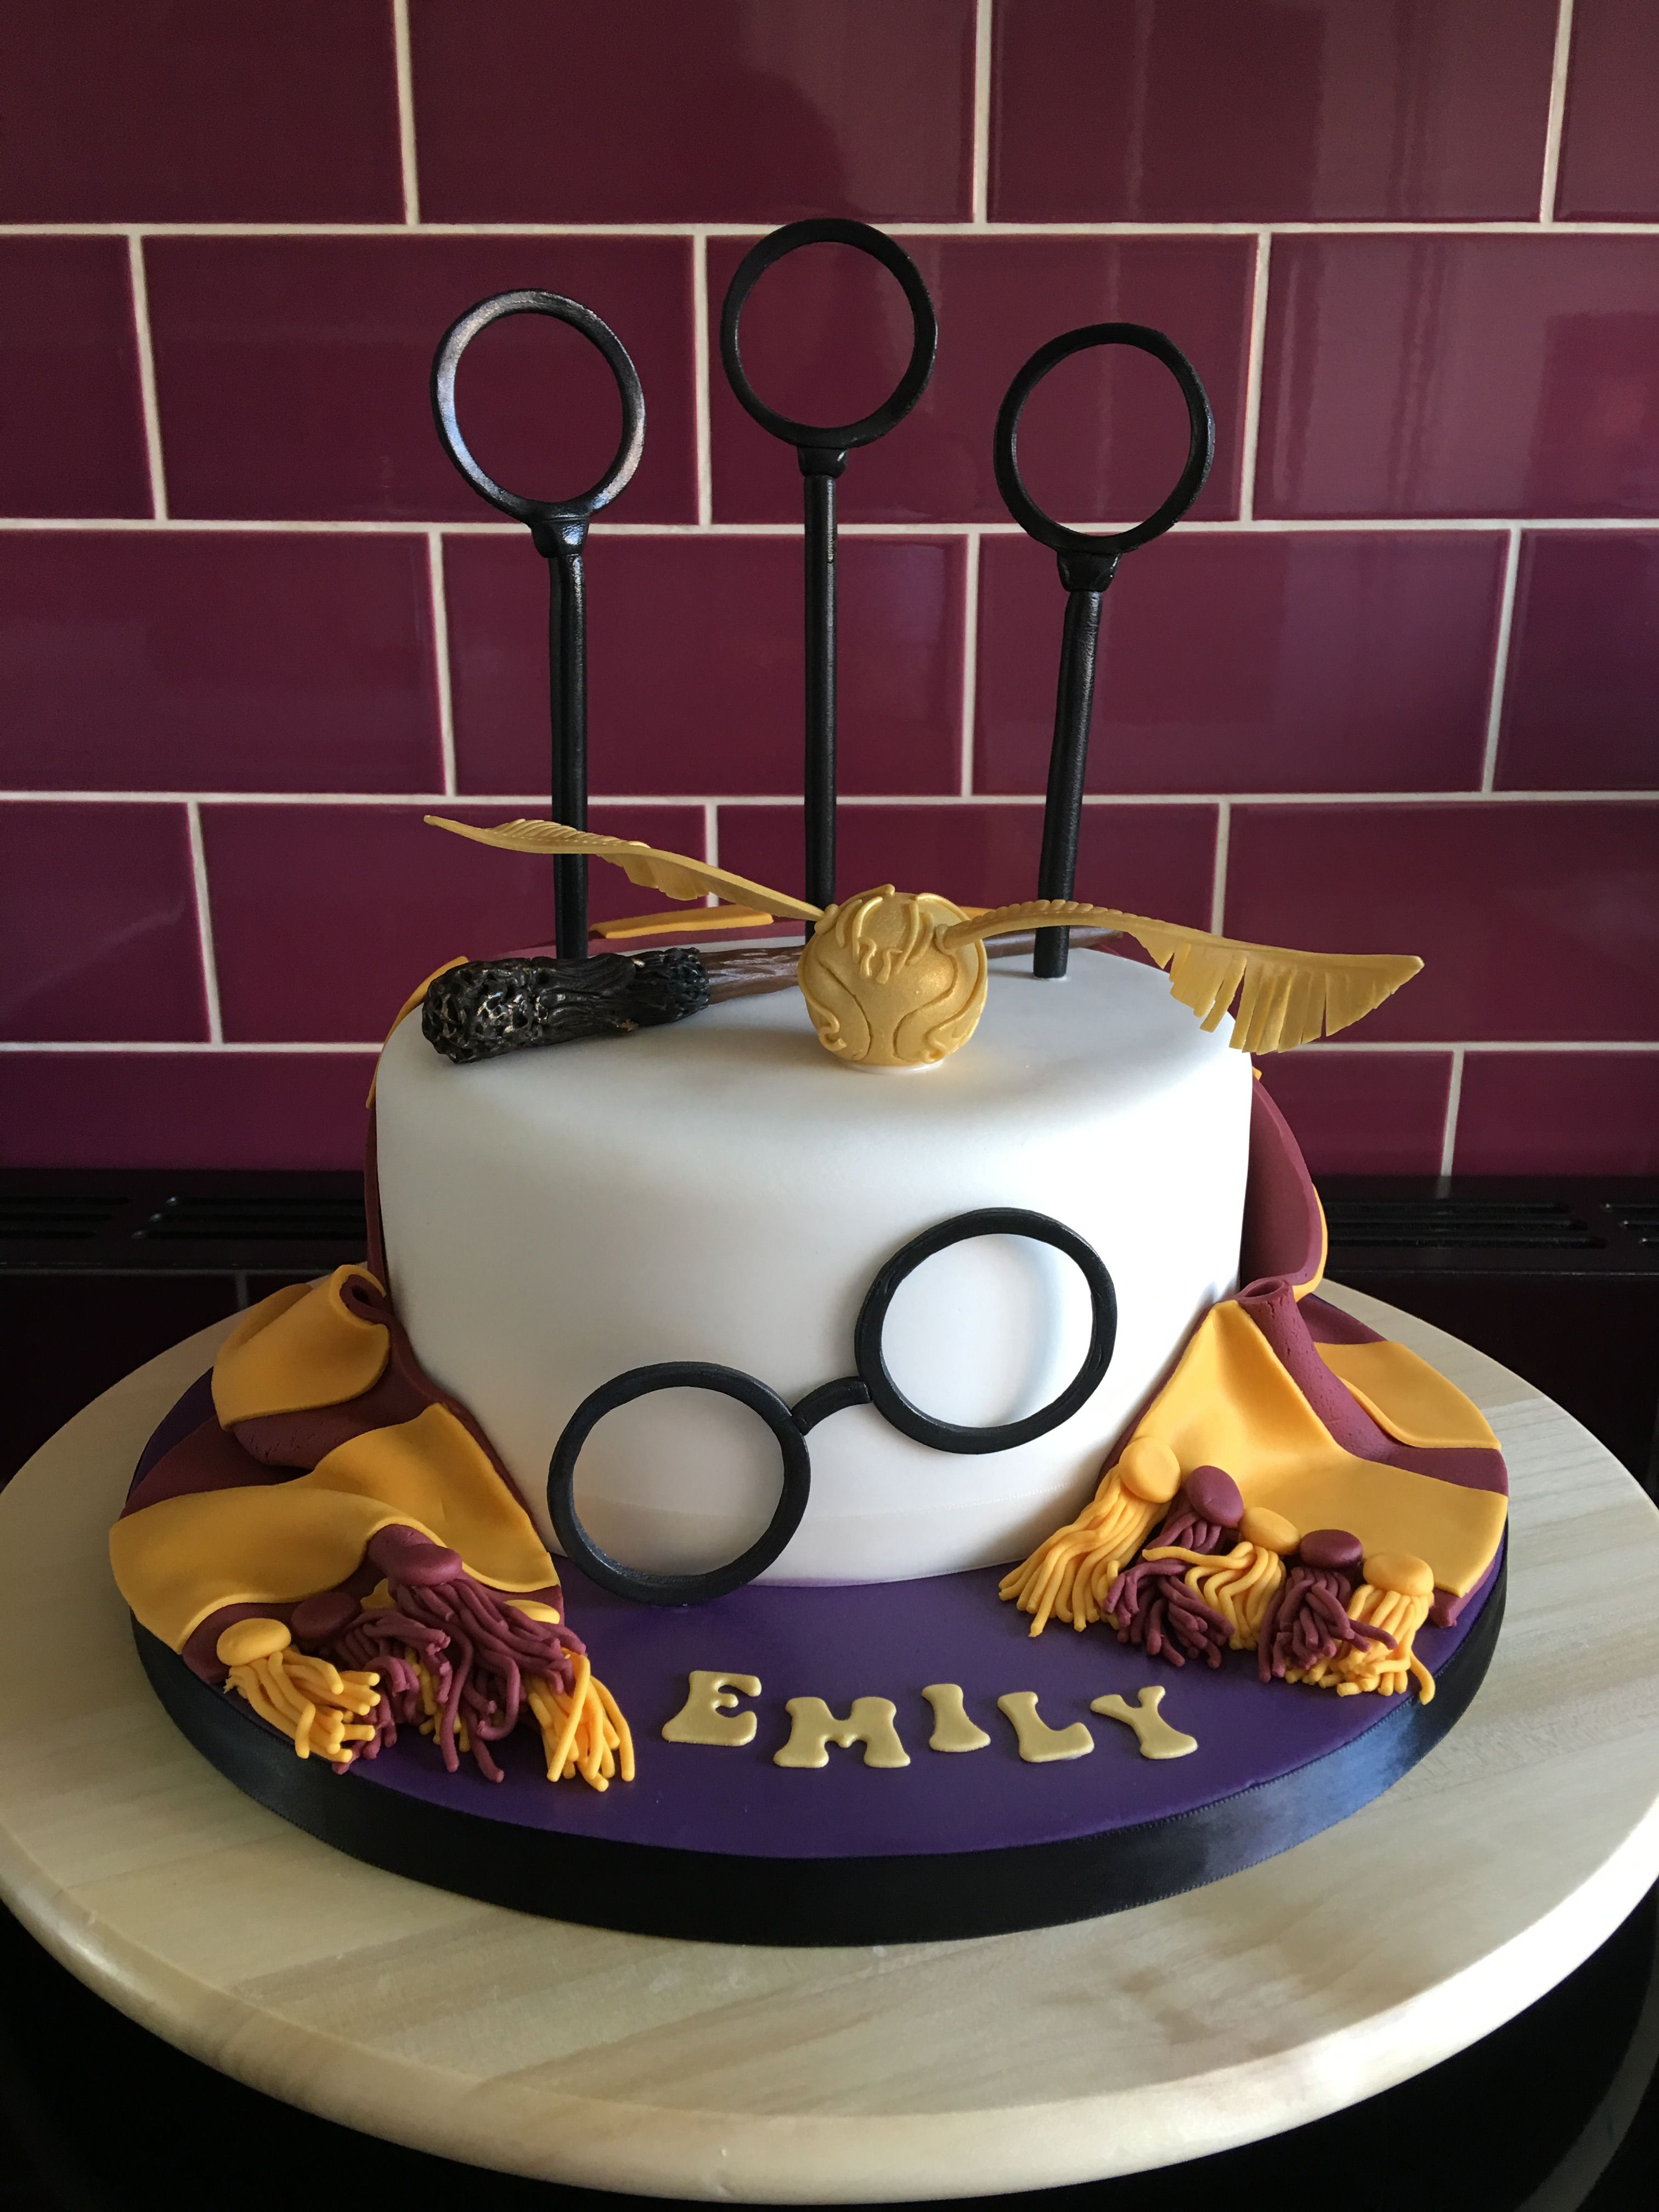 Harry Potter Themed Cake With Quidditch Rings Snitch Scarf And Glasses